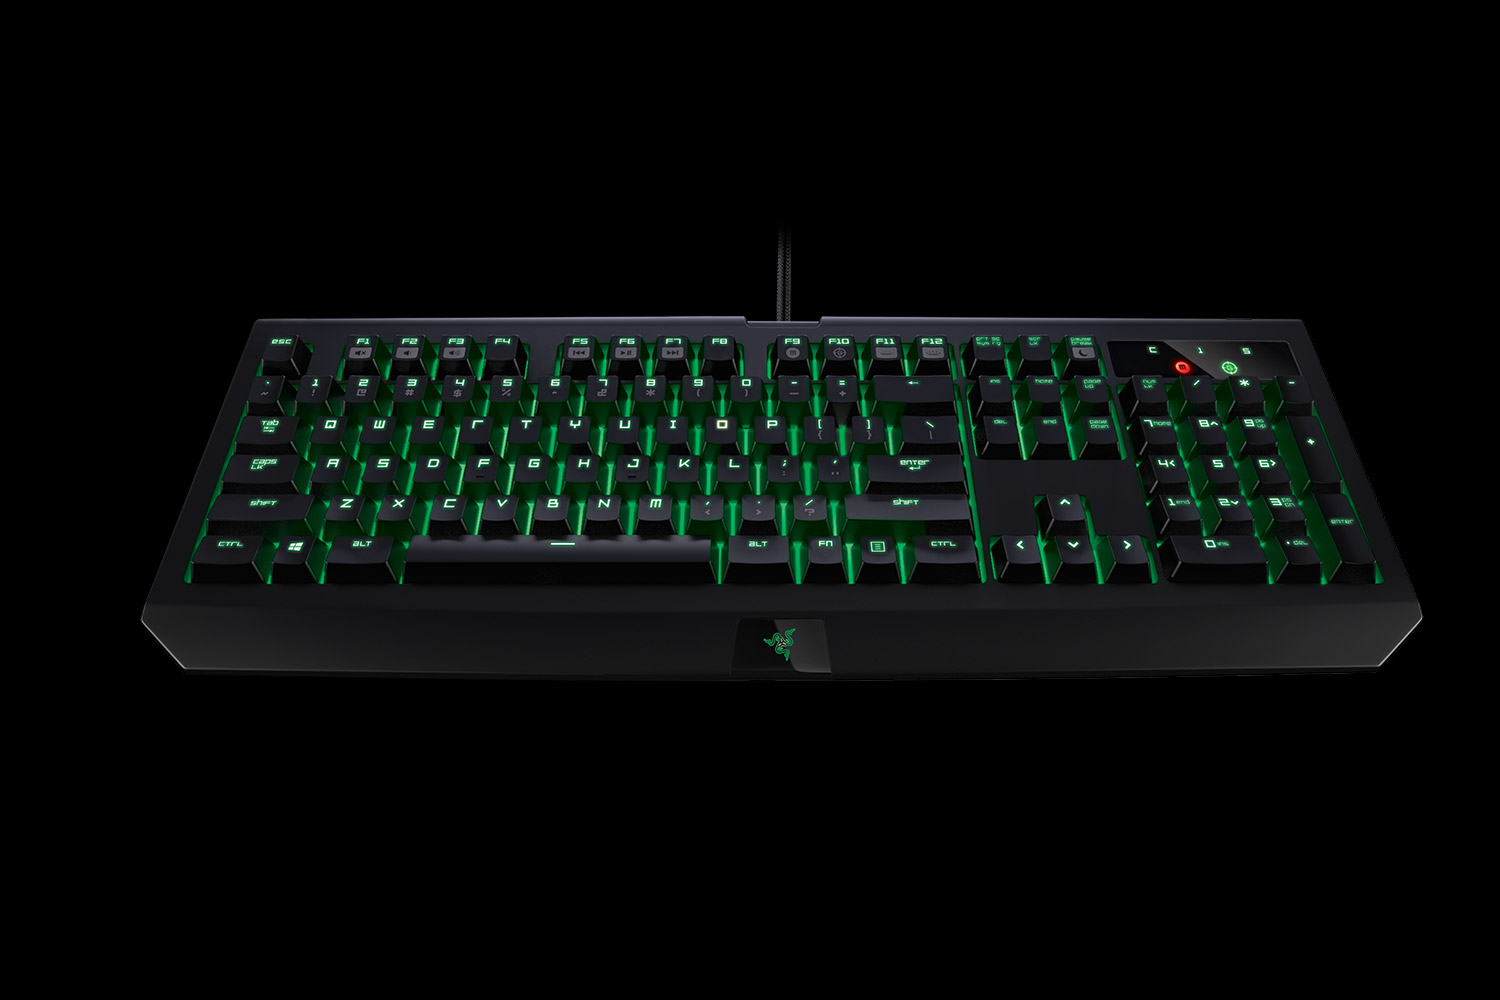 RAZER BLACKWIDOW STEALTH EDITION KEYBOARD SYNAPSE 2.0 DRIVERS FOR MAC DOWNLOAD